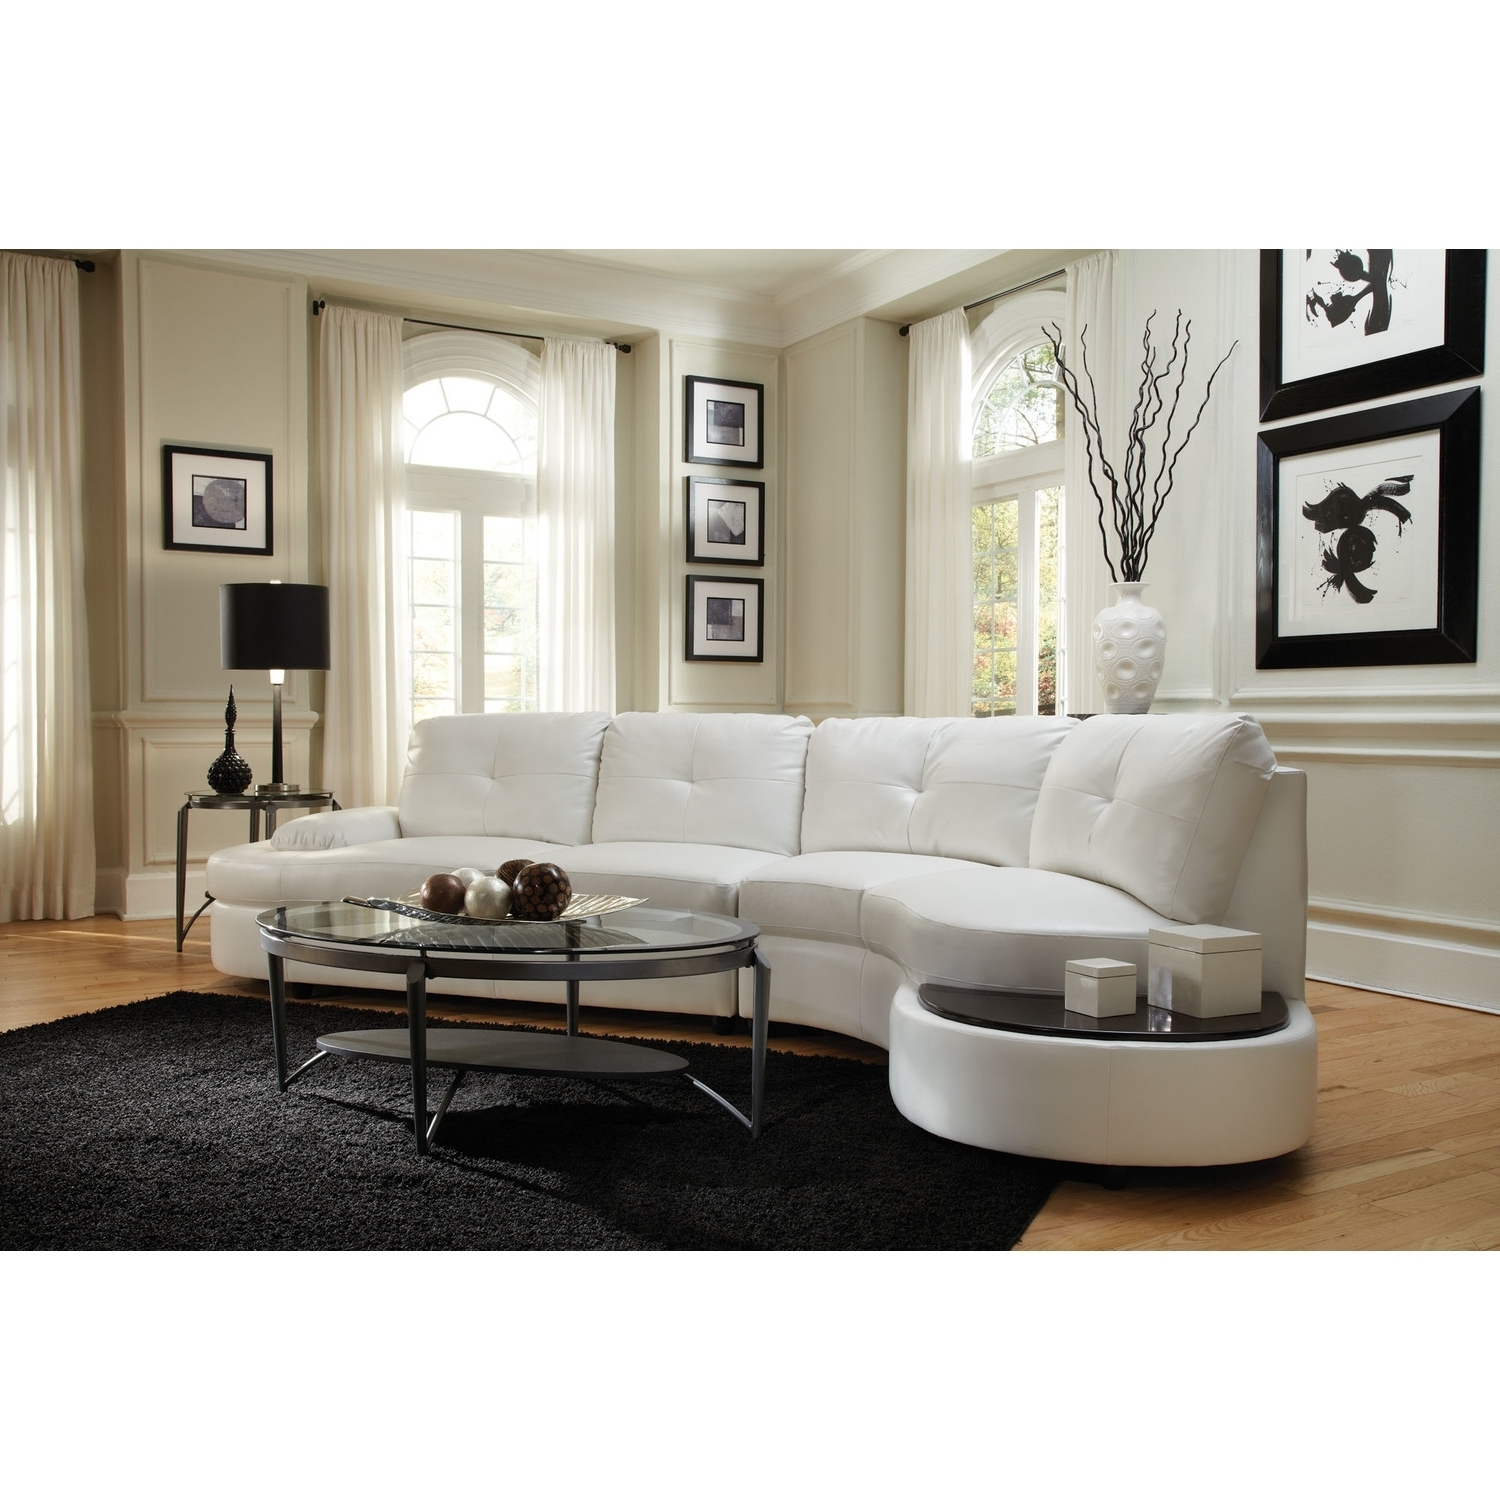 Collection Sectional Sofas Rochester Ny – Mediasupload Within 2019 Rochester Ny Sectional Sofas (View 5 of 20)